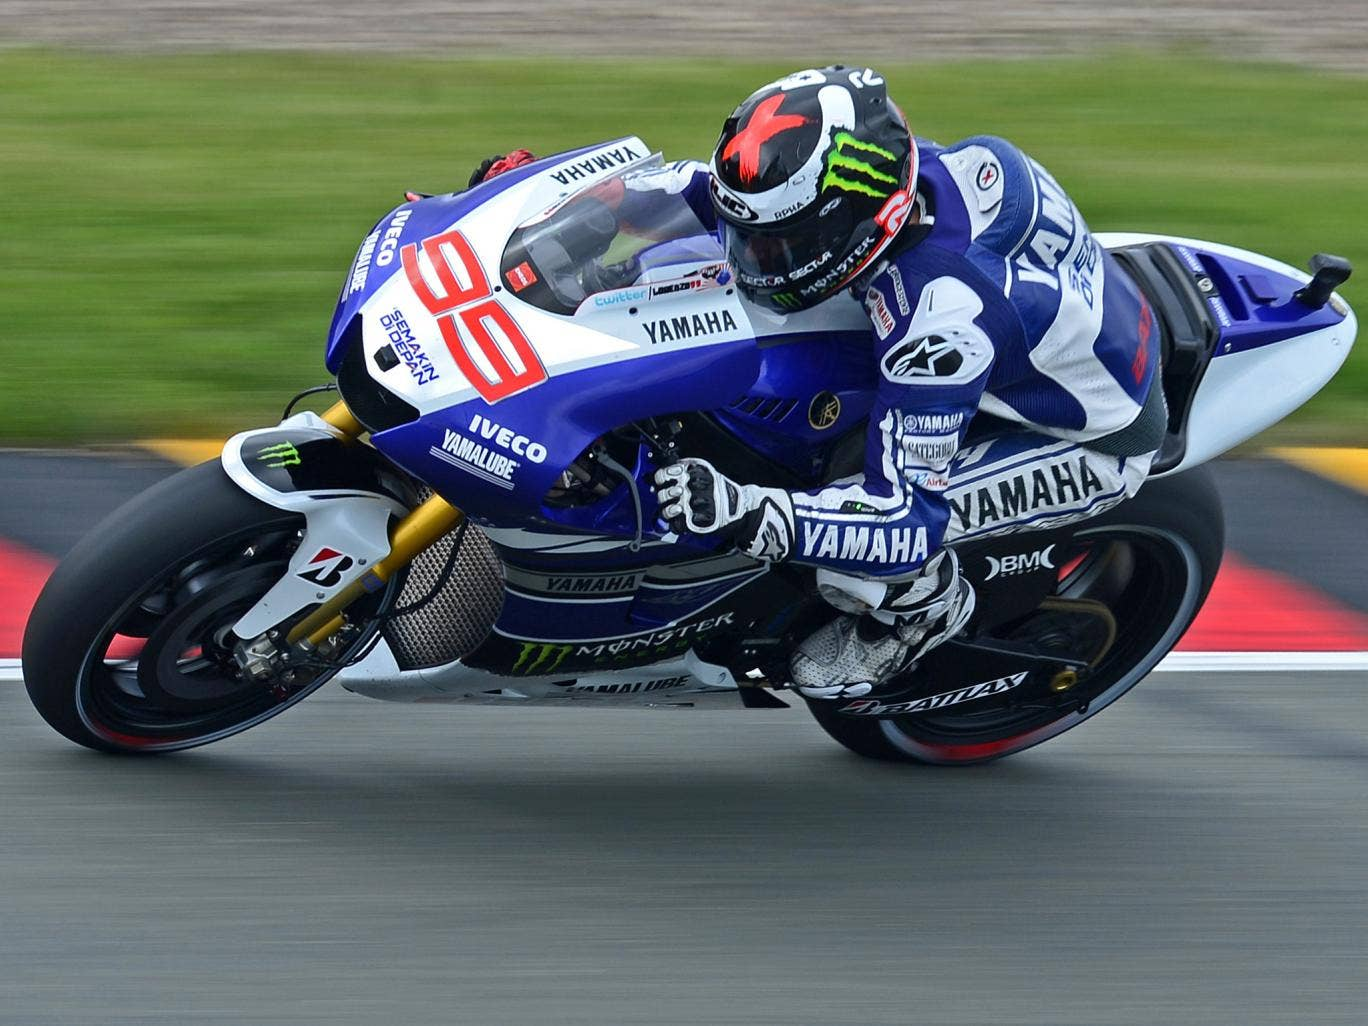 Jorge Lorenzo in action at the Sachsenring before he suffered his crash